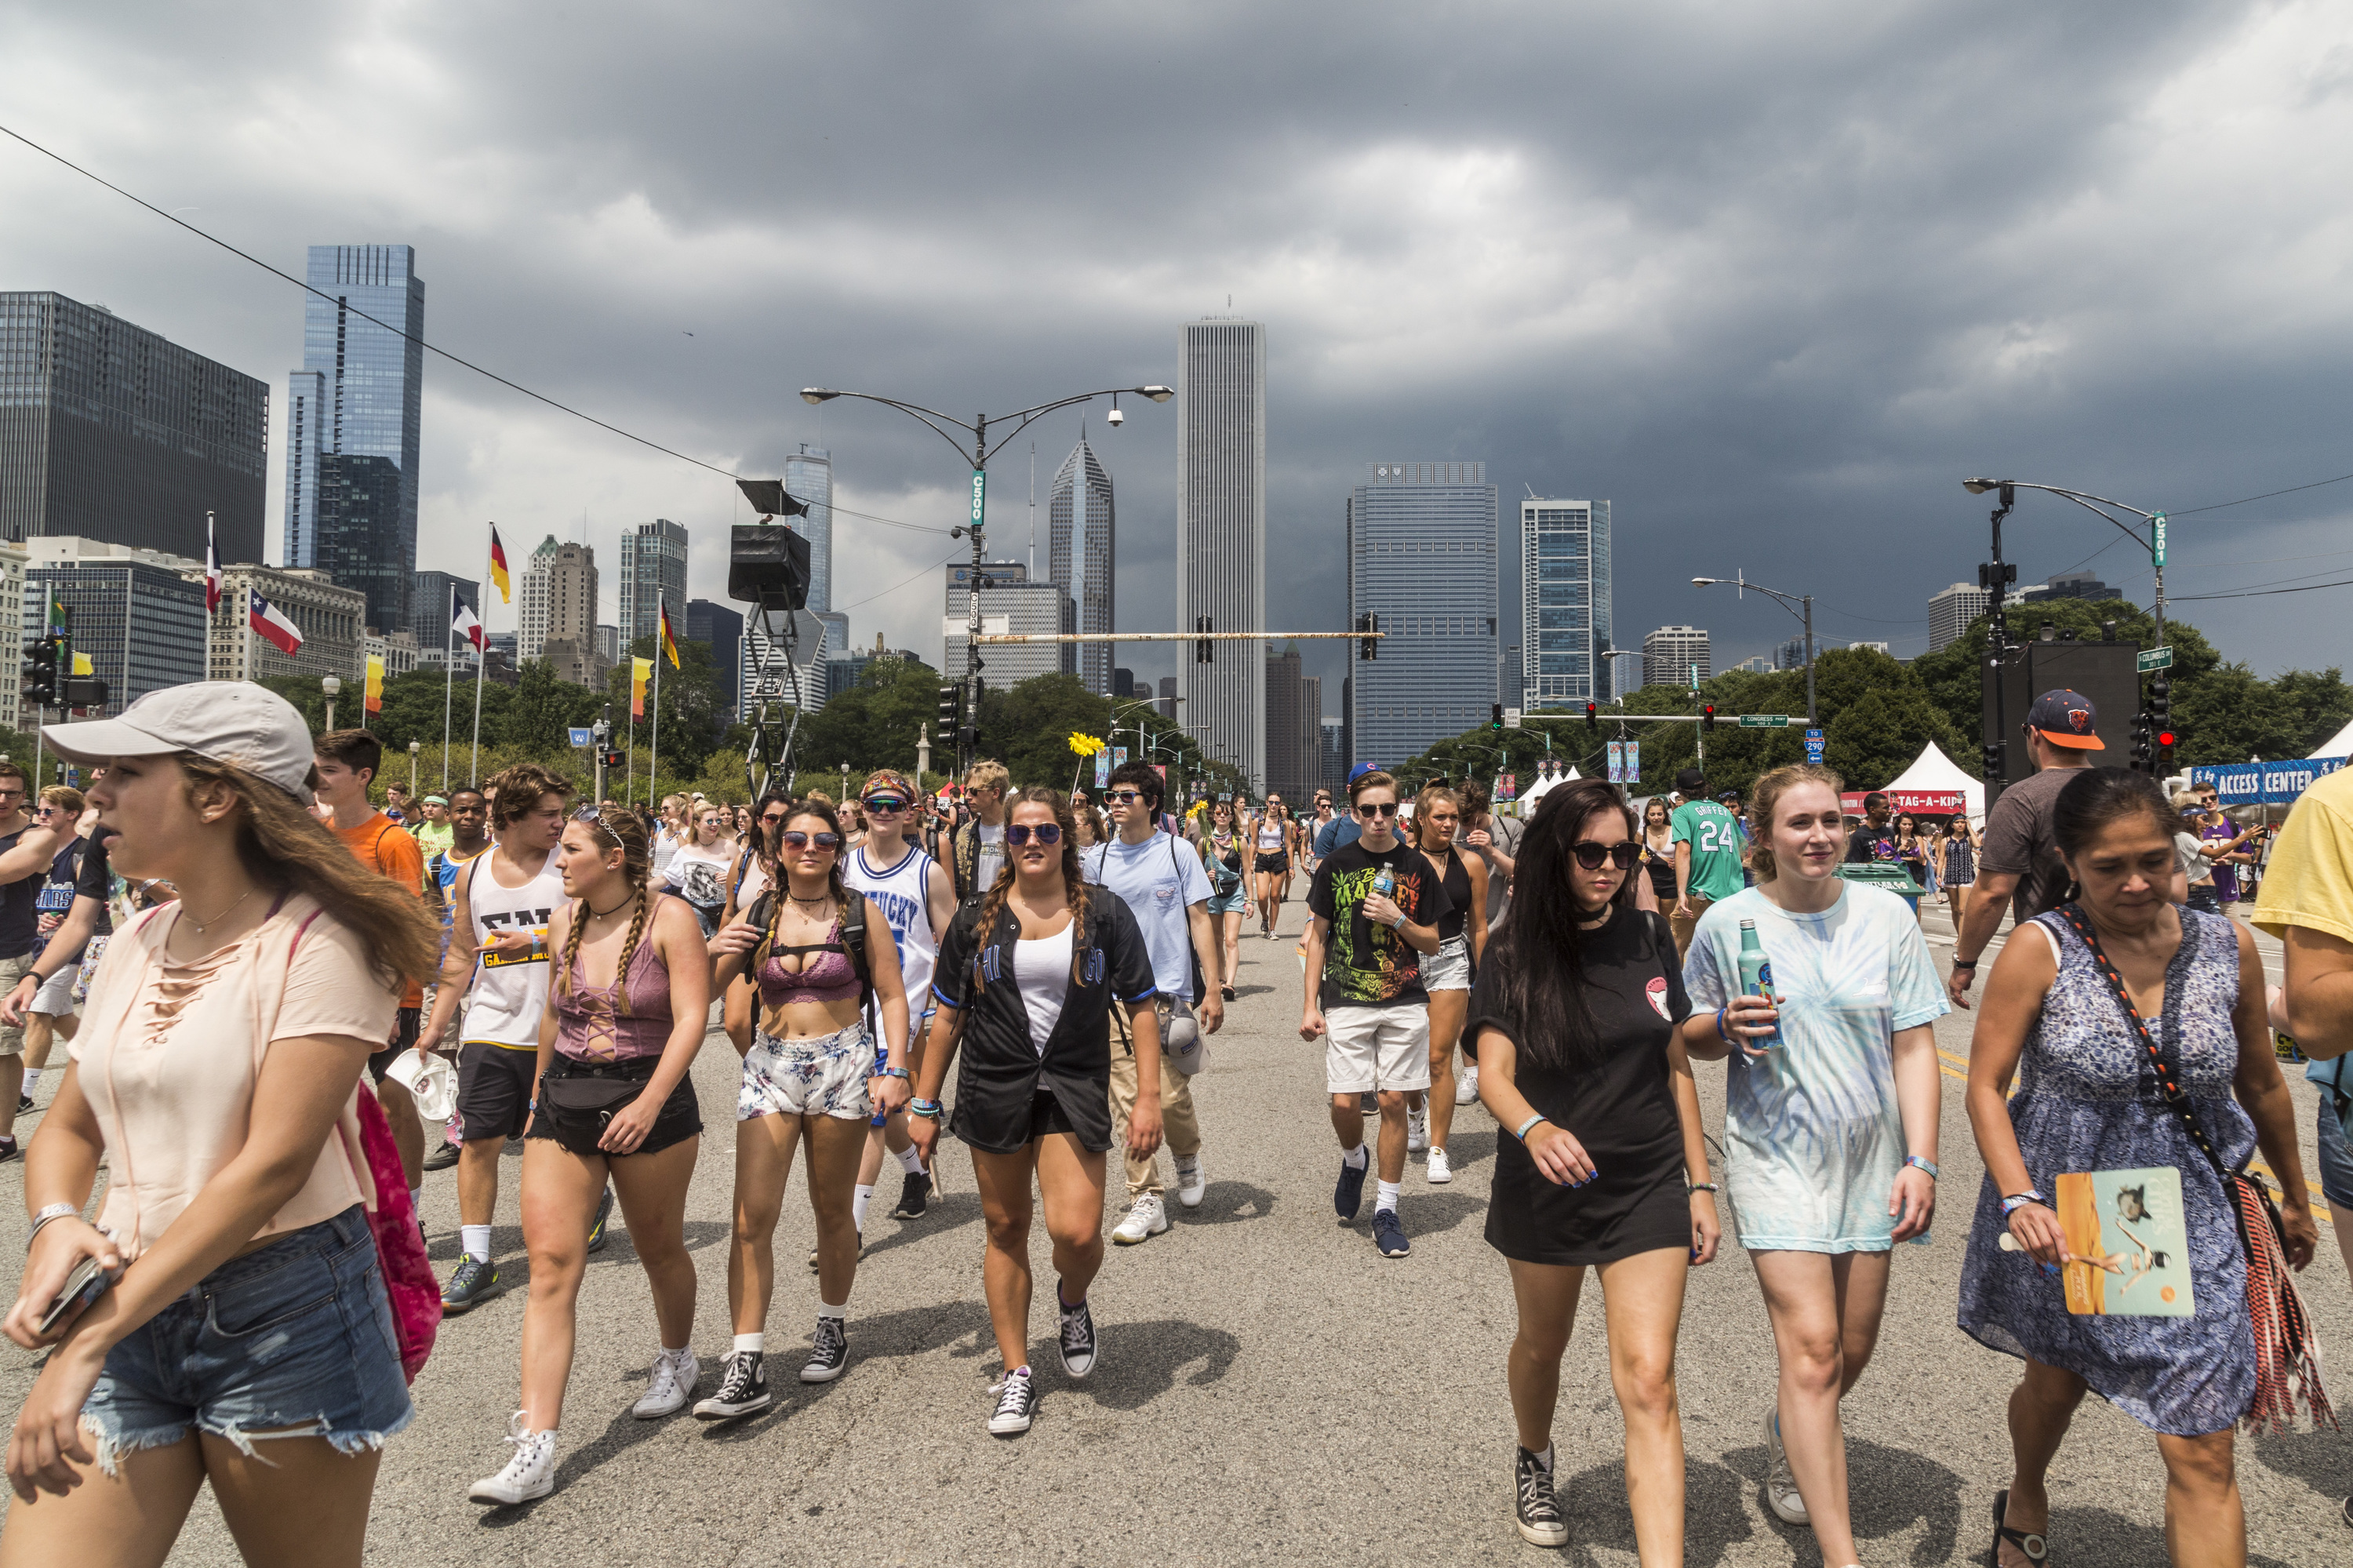 Photos from Lollapalooza 2017, Saturday